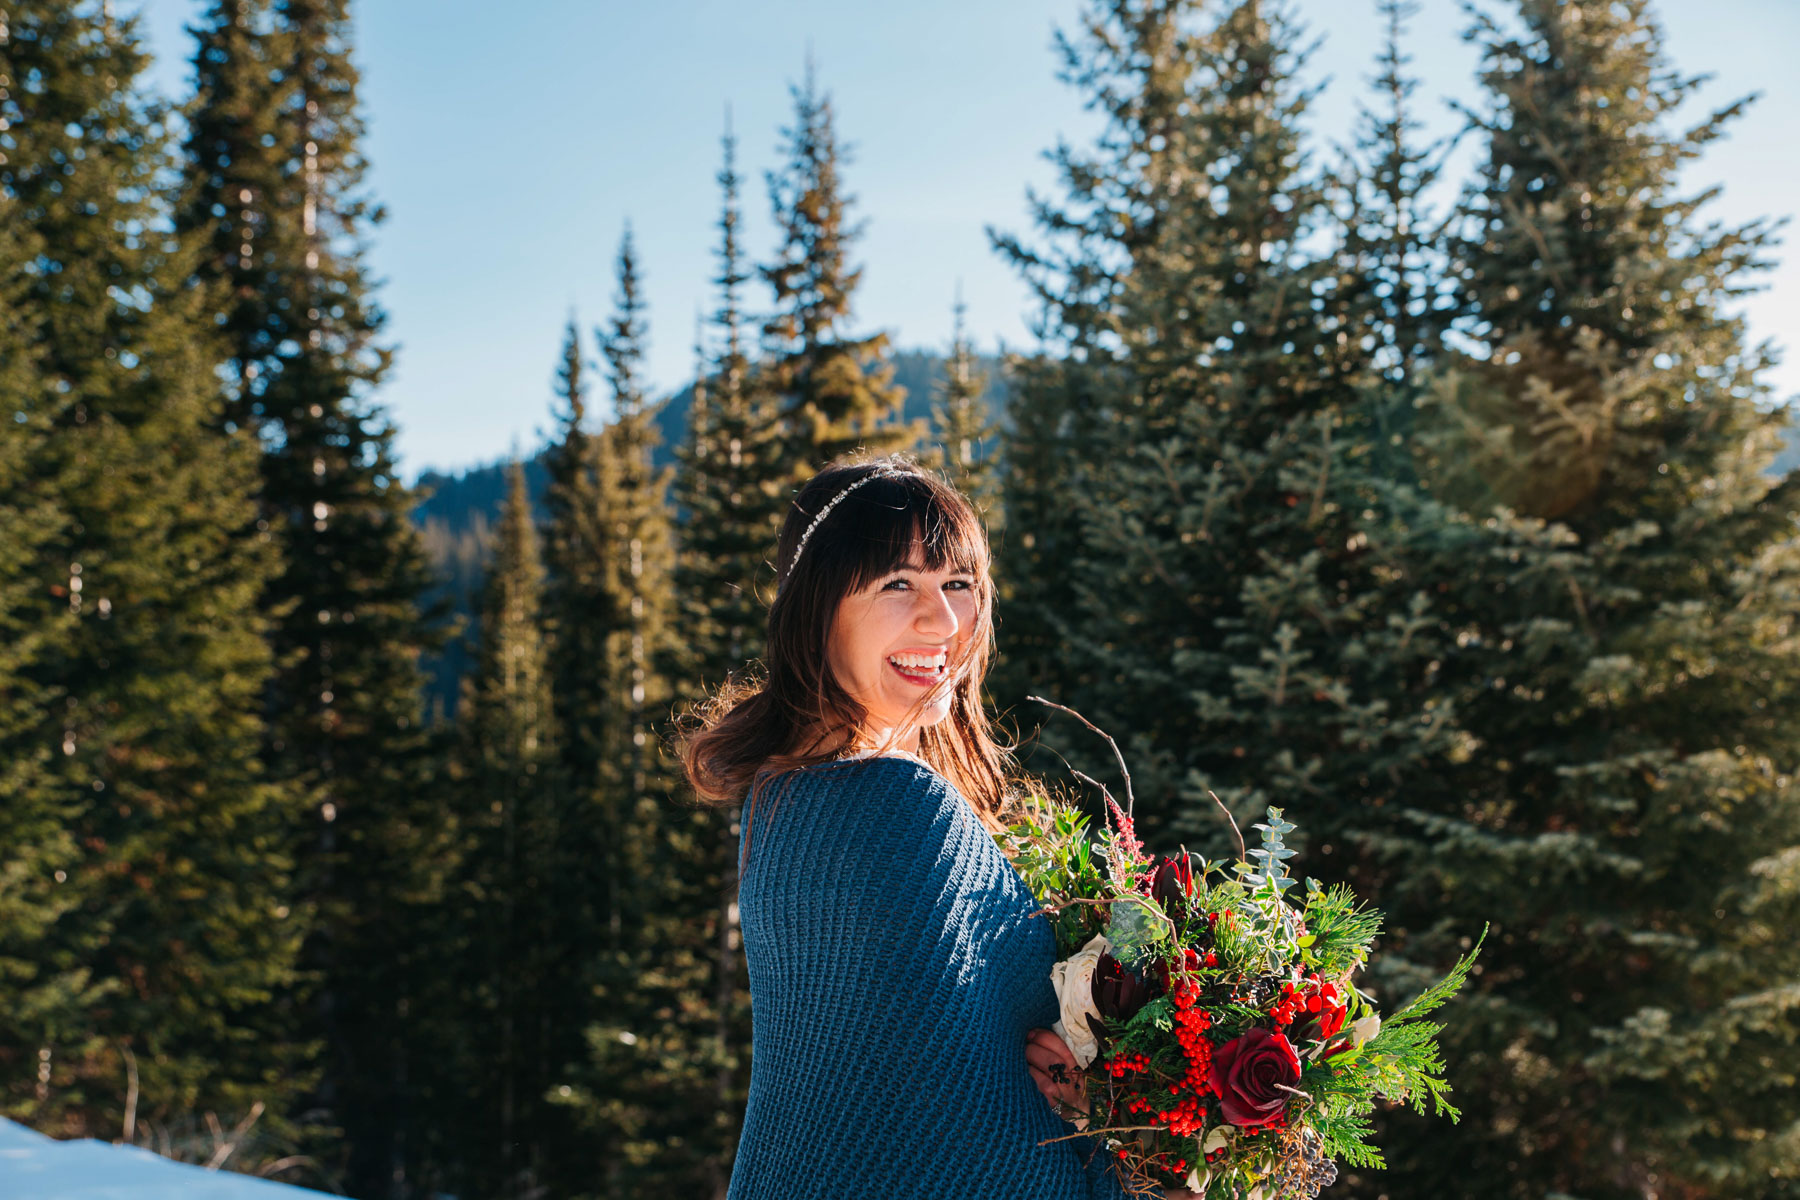 105colorado-mountain-wedding-photographer-denver-colorado-mountain-weddings-intimate-weddings-destination-colorado-rocky-mountain-wedding-photographer_snowmobile-elopement-adventure-elopement-colorado-elopement-photographer-stylzed-shoot-dec2017-531-2.jpg